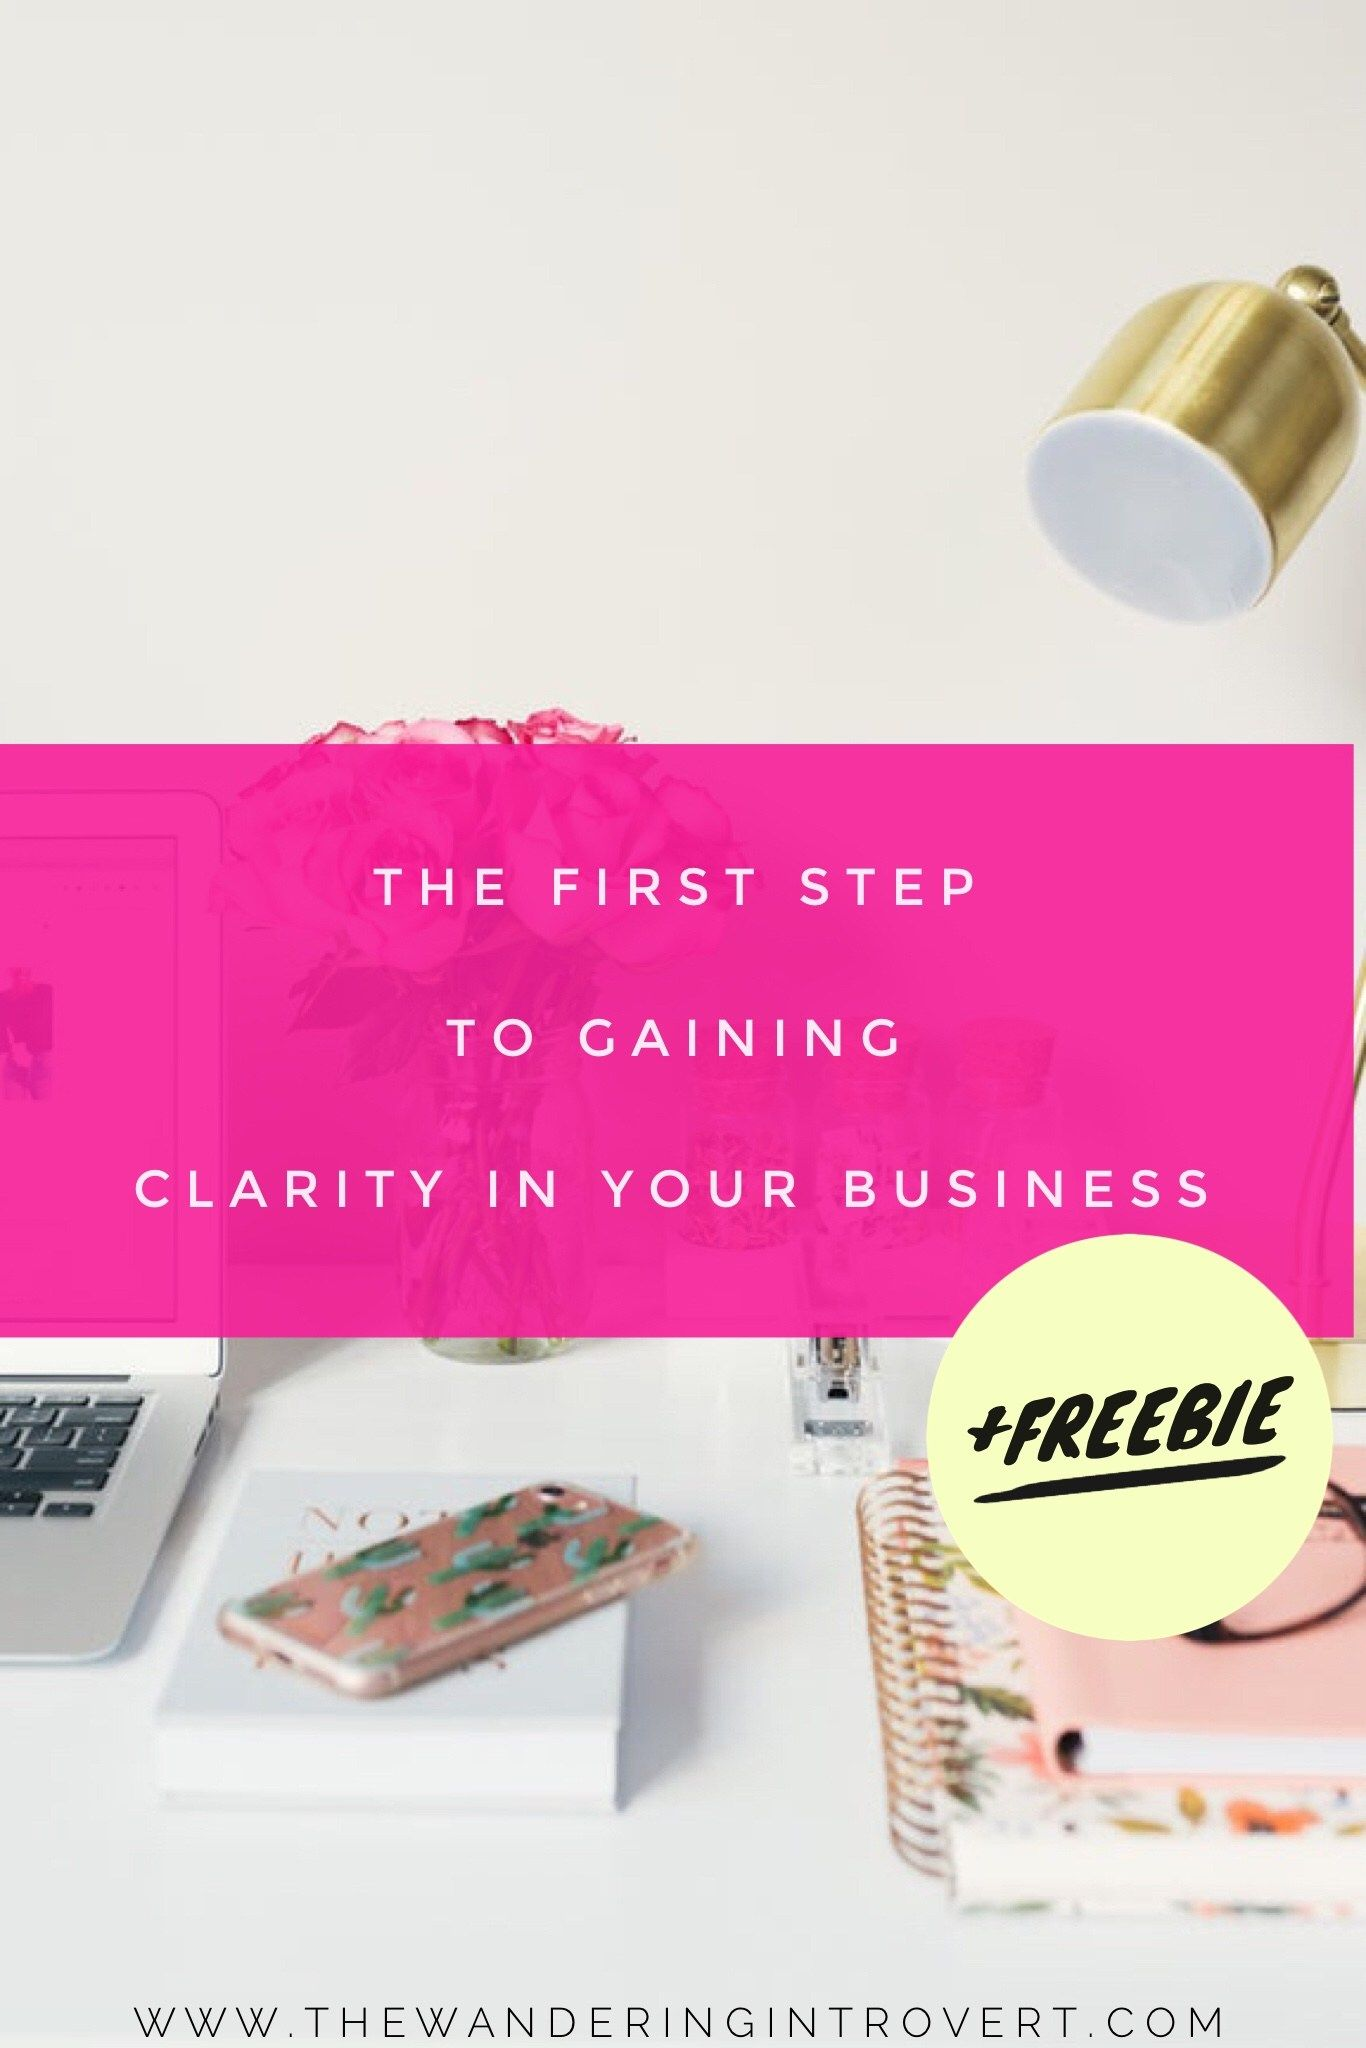 The First Step To Gaining Clarity In Your Business